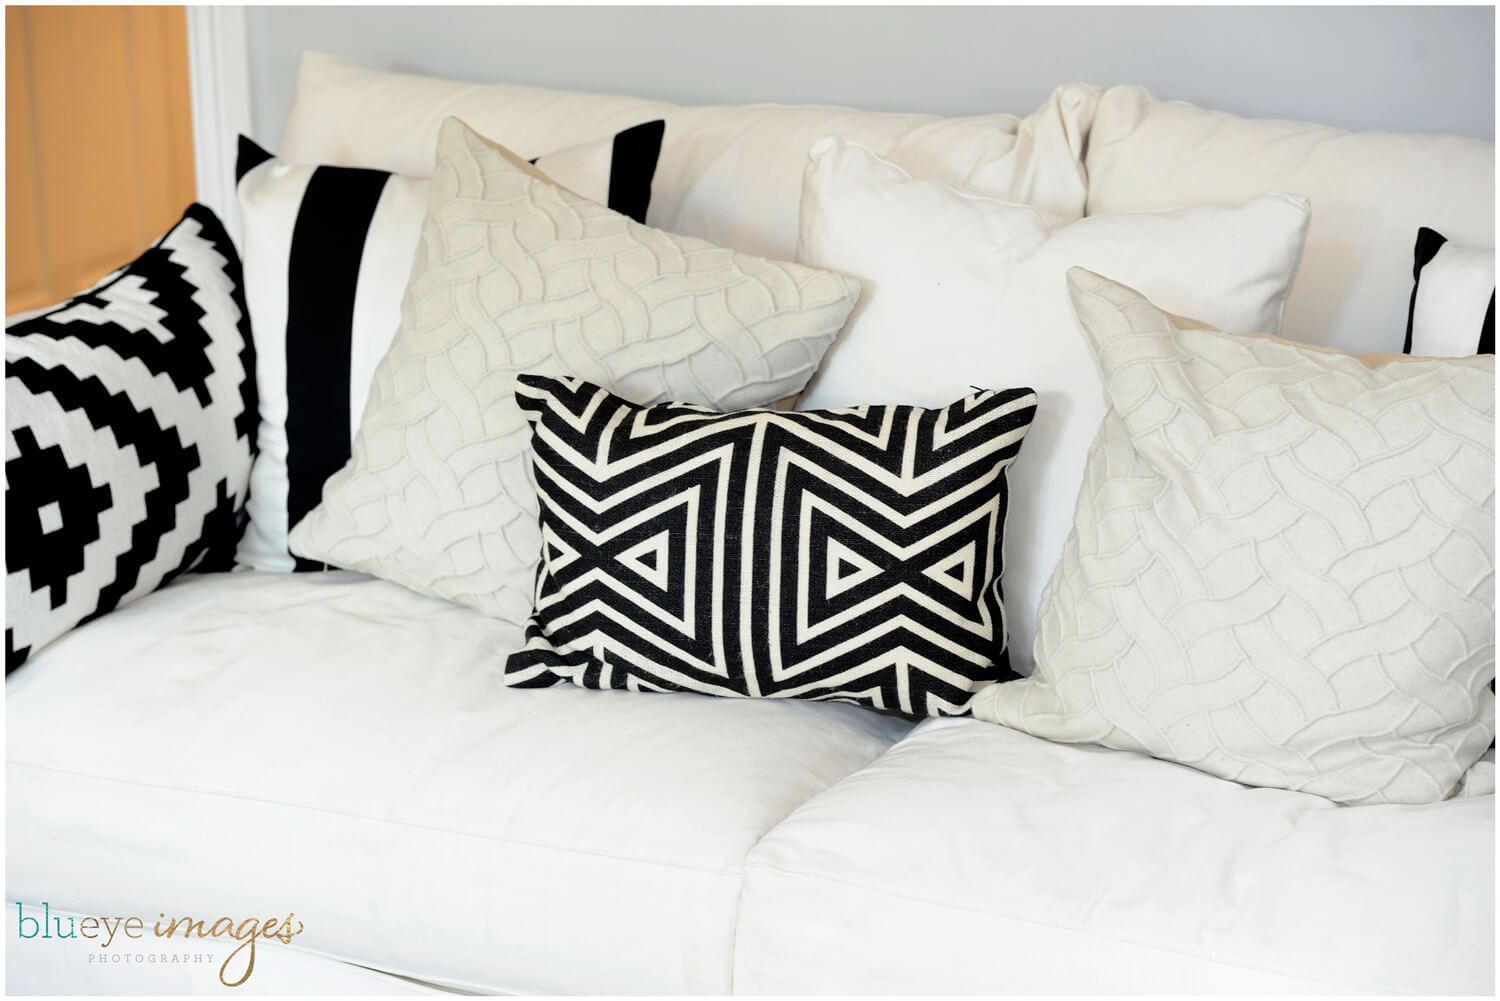 beige couch with black and white geometric-patterned throw pillows